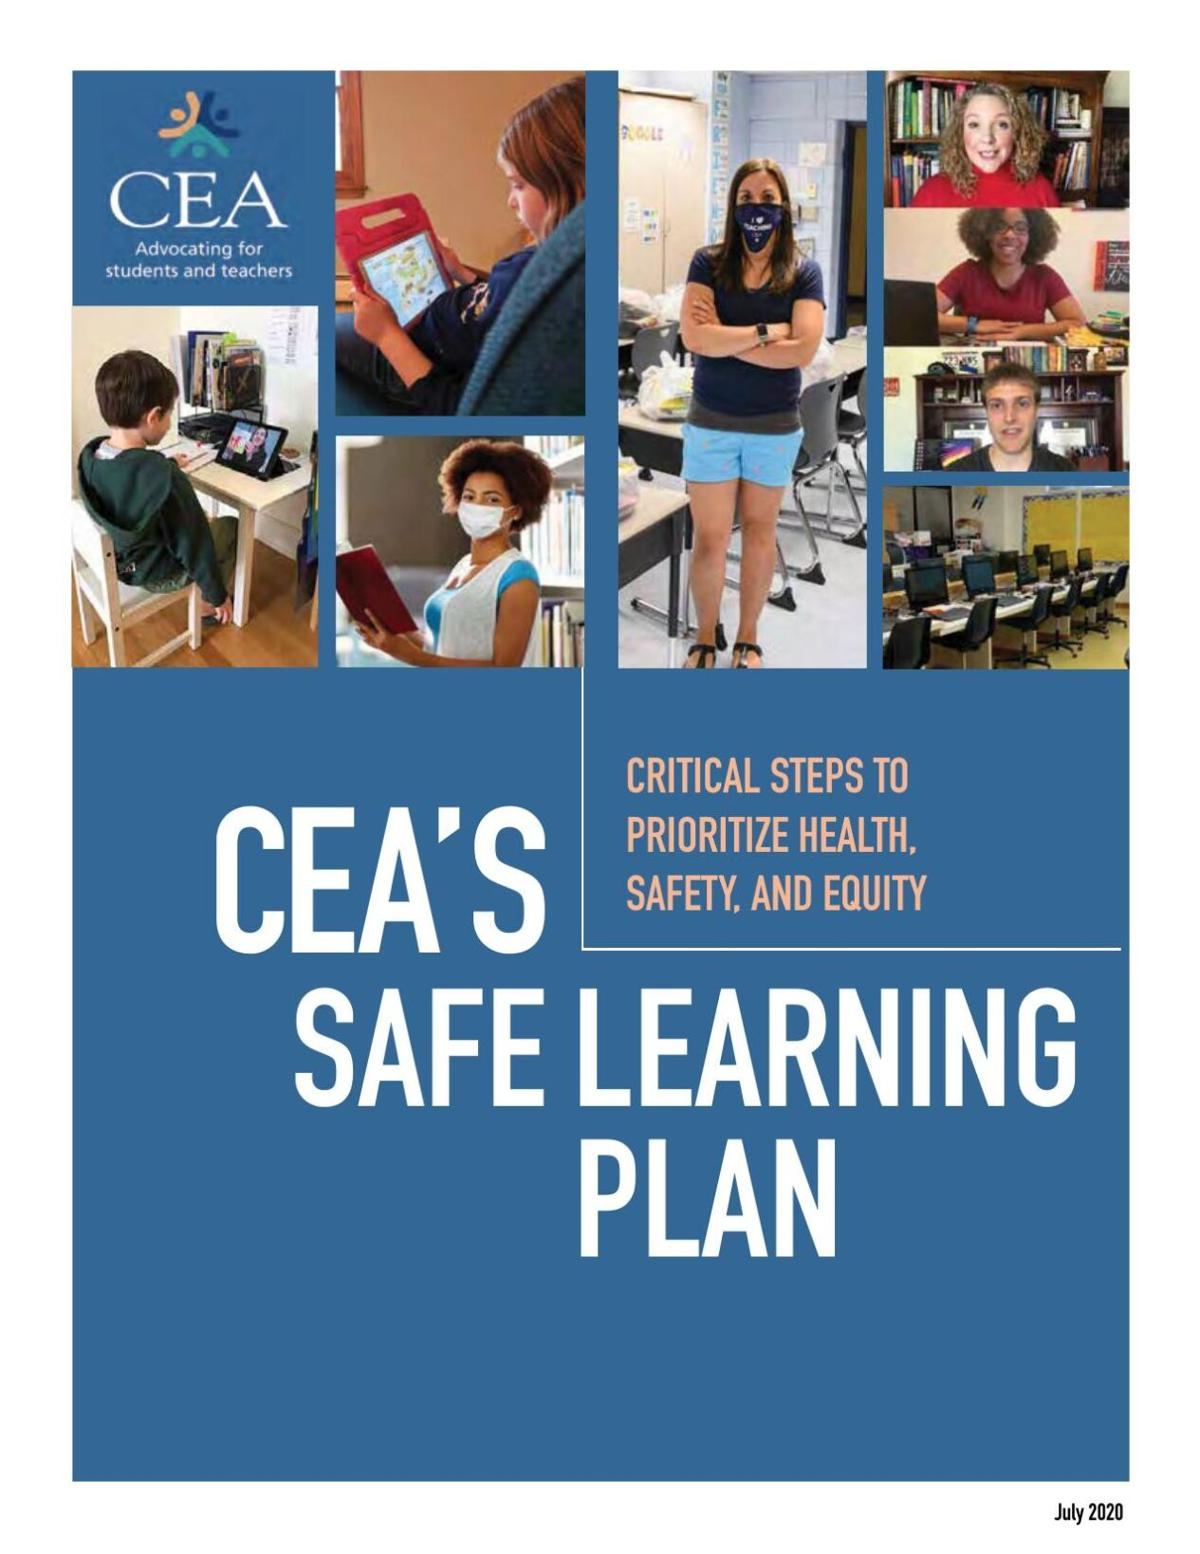 CEA's safe learning plan